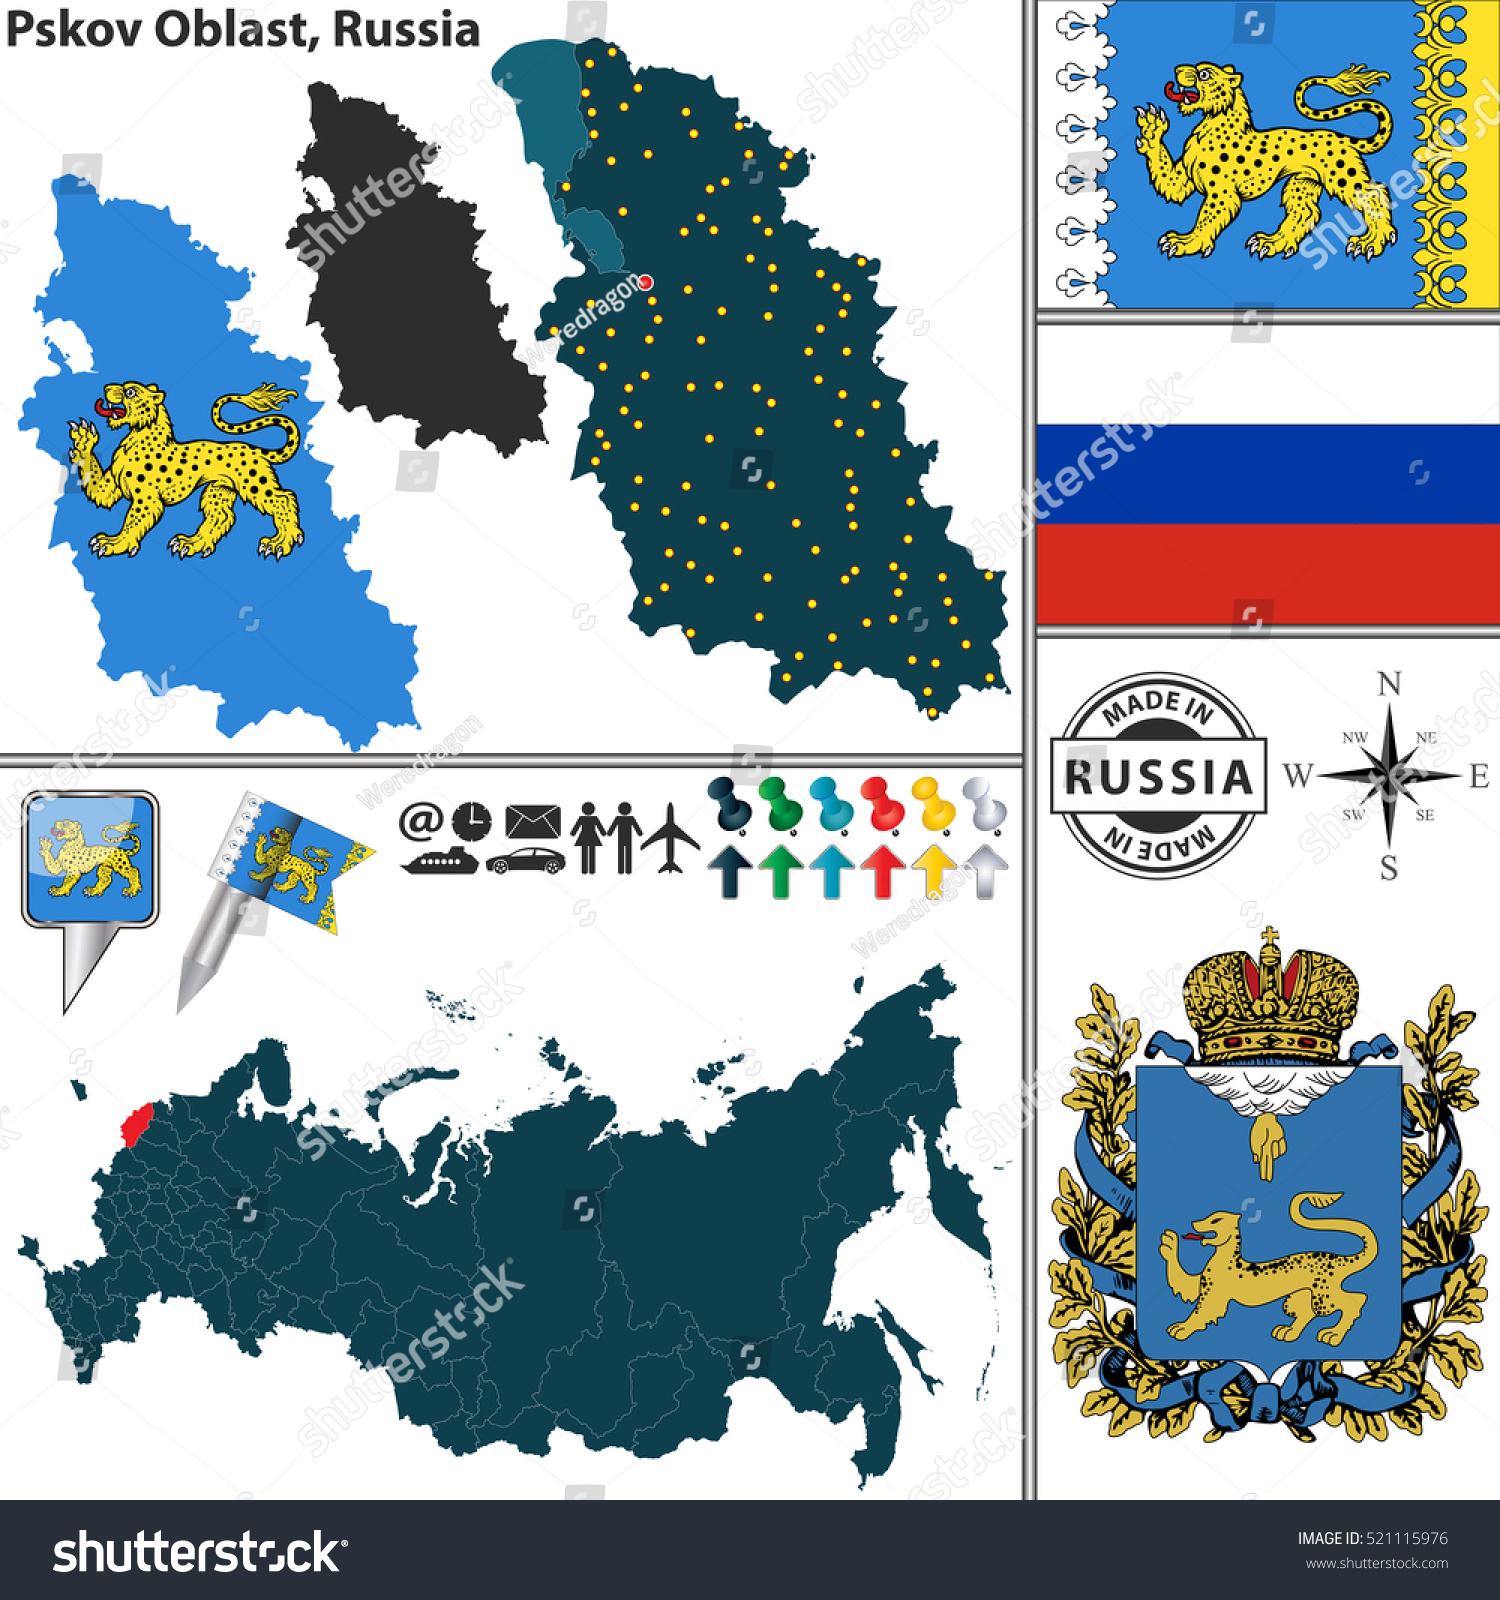 Flag and coat of arms of Pskov: history, description and interesting facts 17